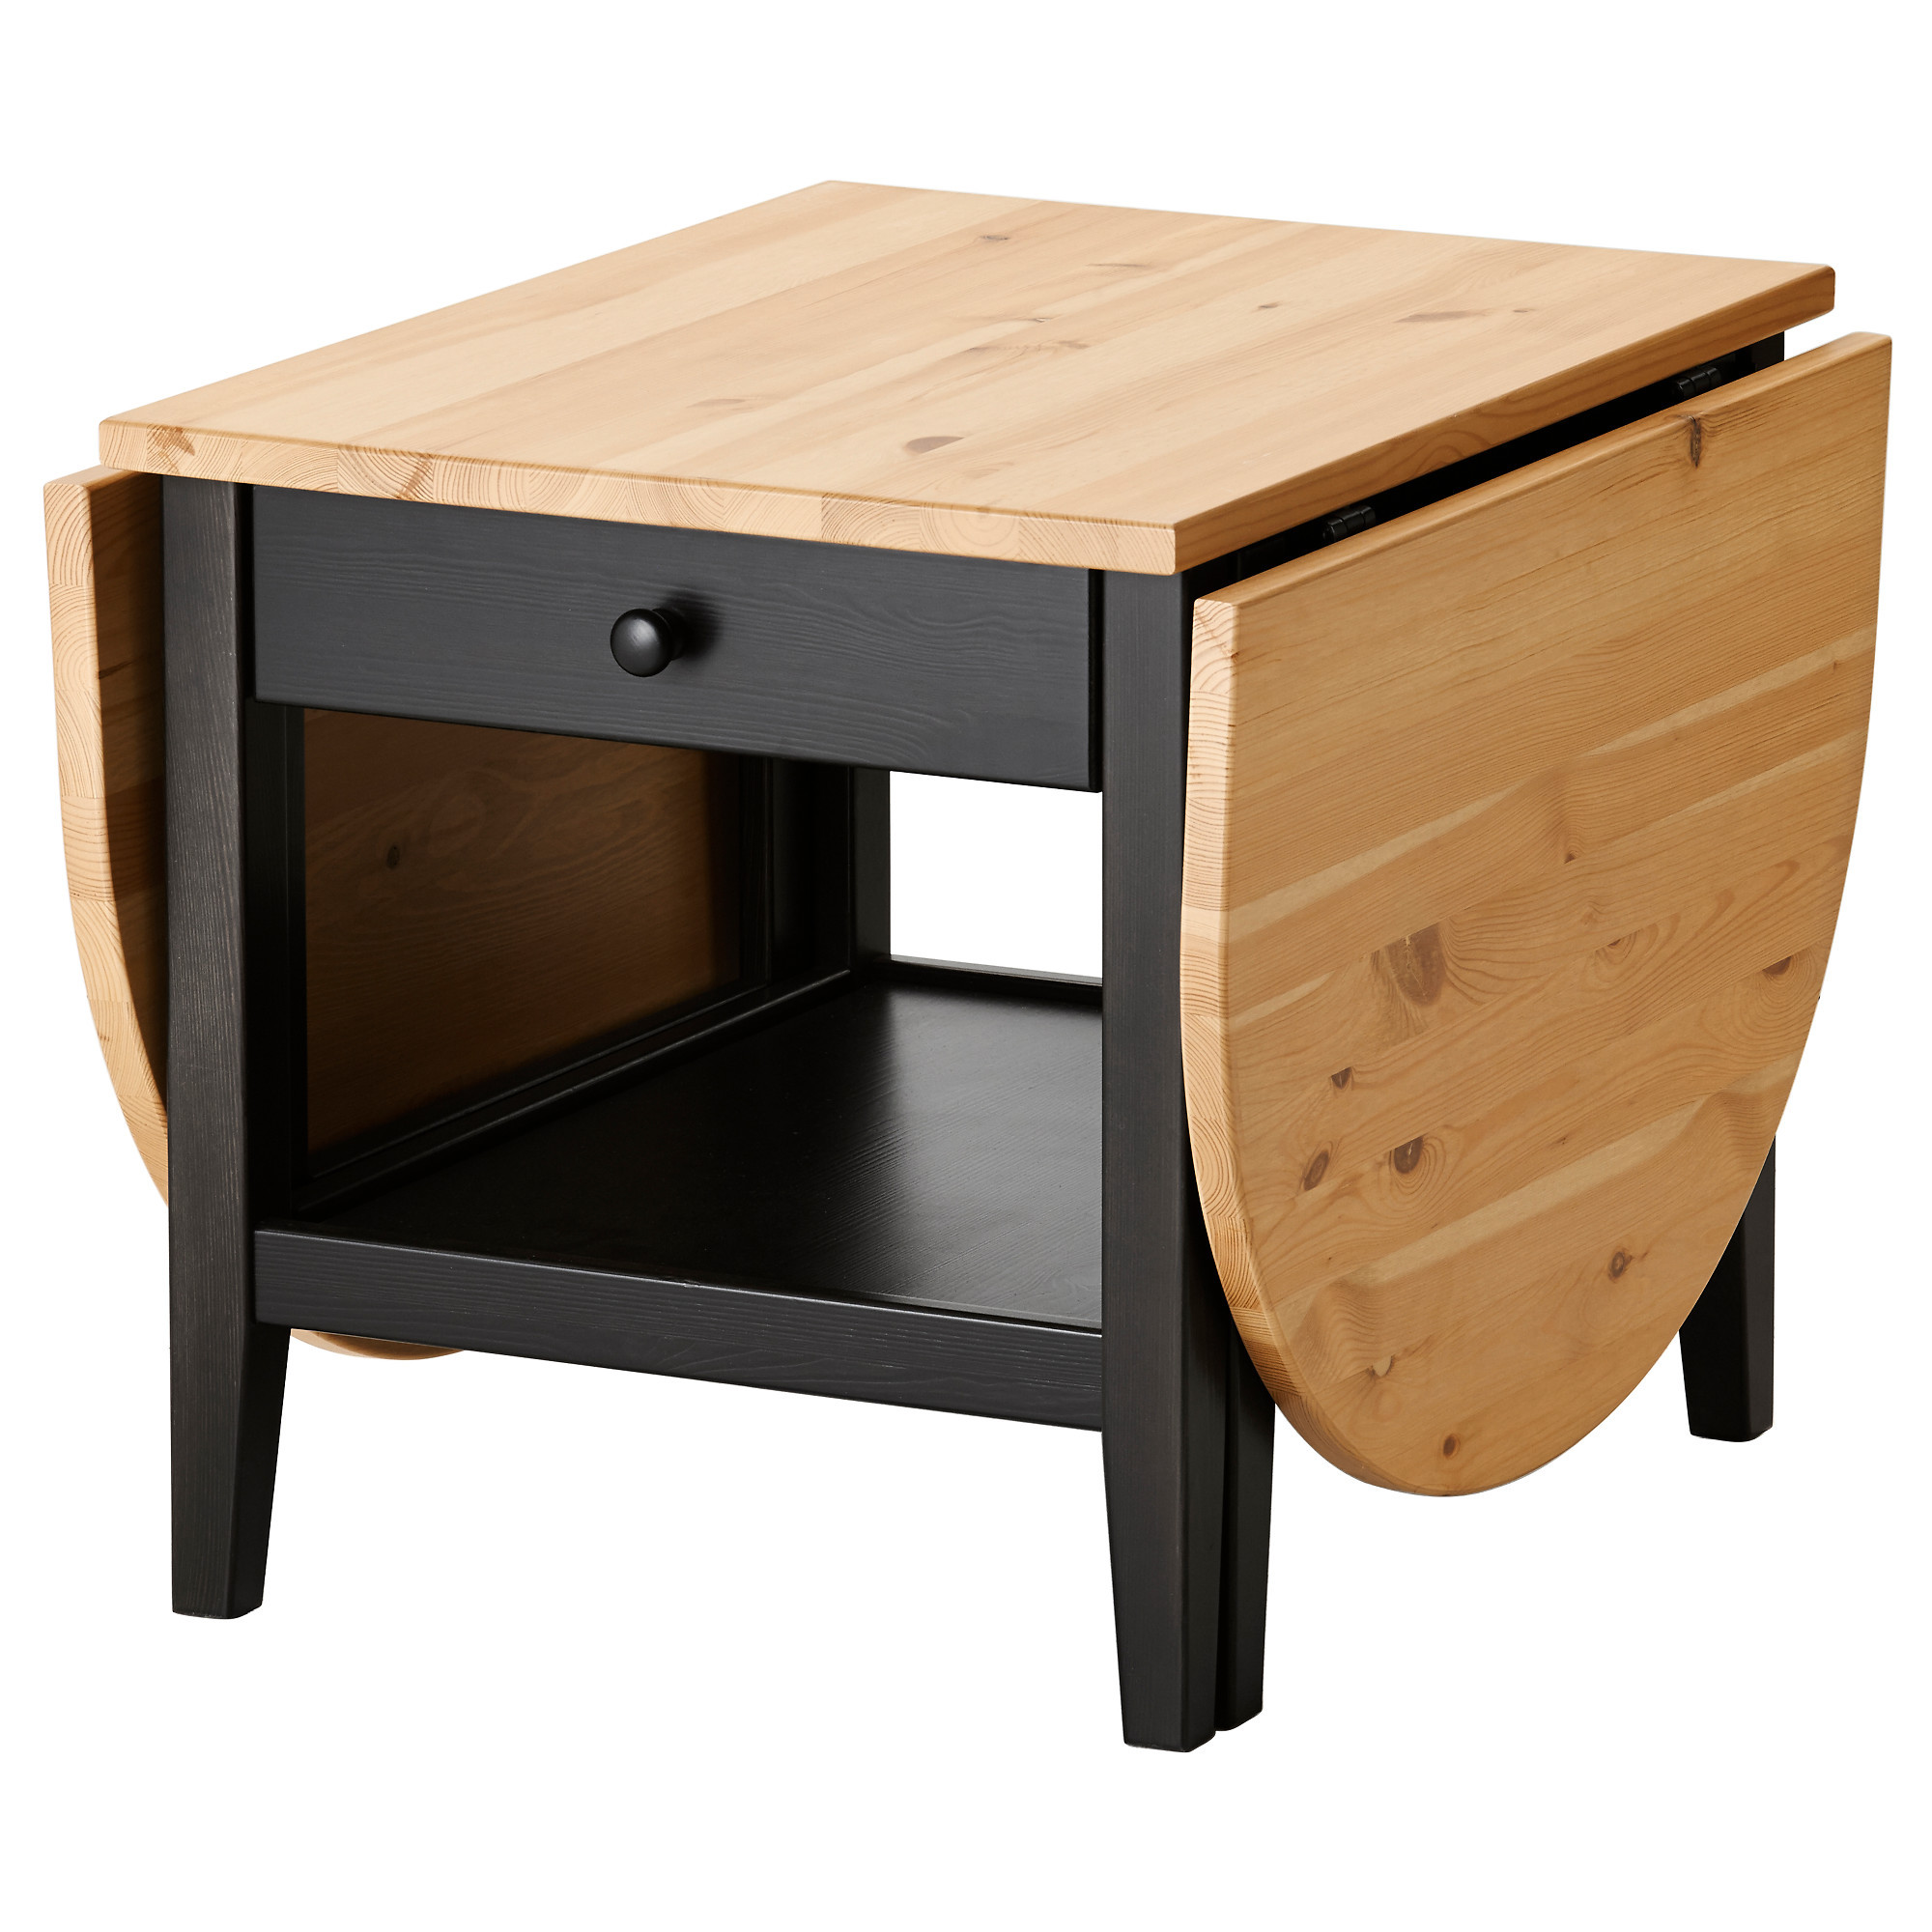 Ikea Esstisch Bjursta Erfahrung ~ Table with Drawers Drop Leaf Tables for Small Spaces drop leaf table